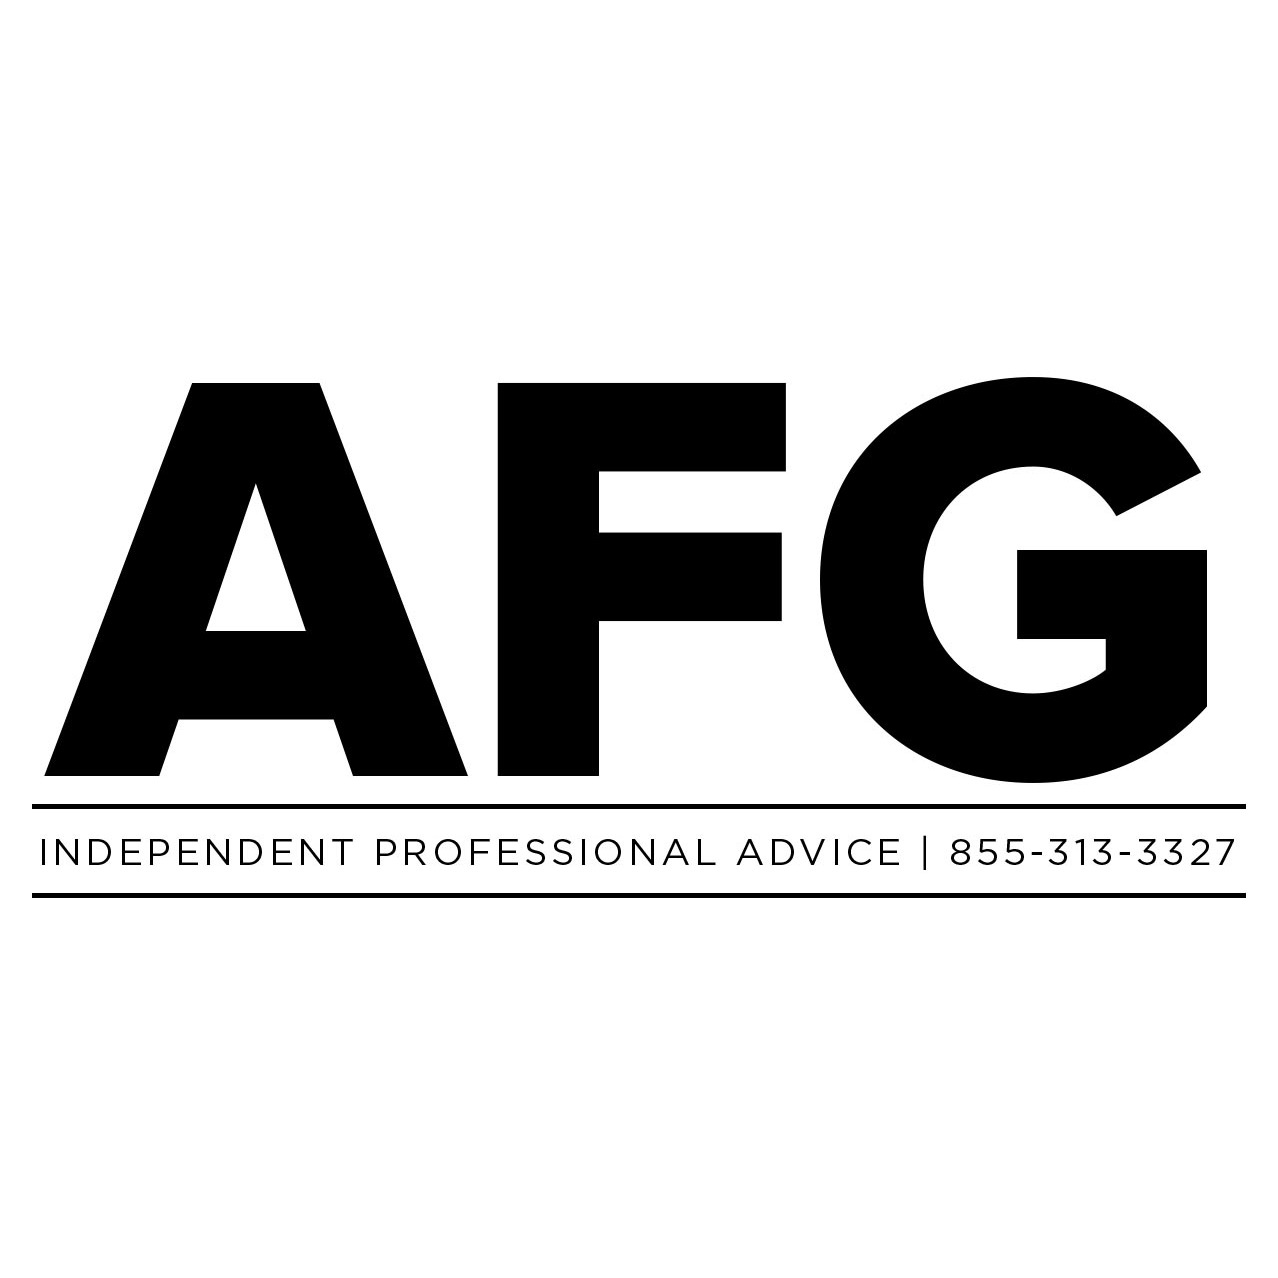 Independent Professional Advisors - ad image